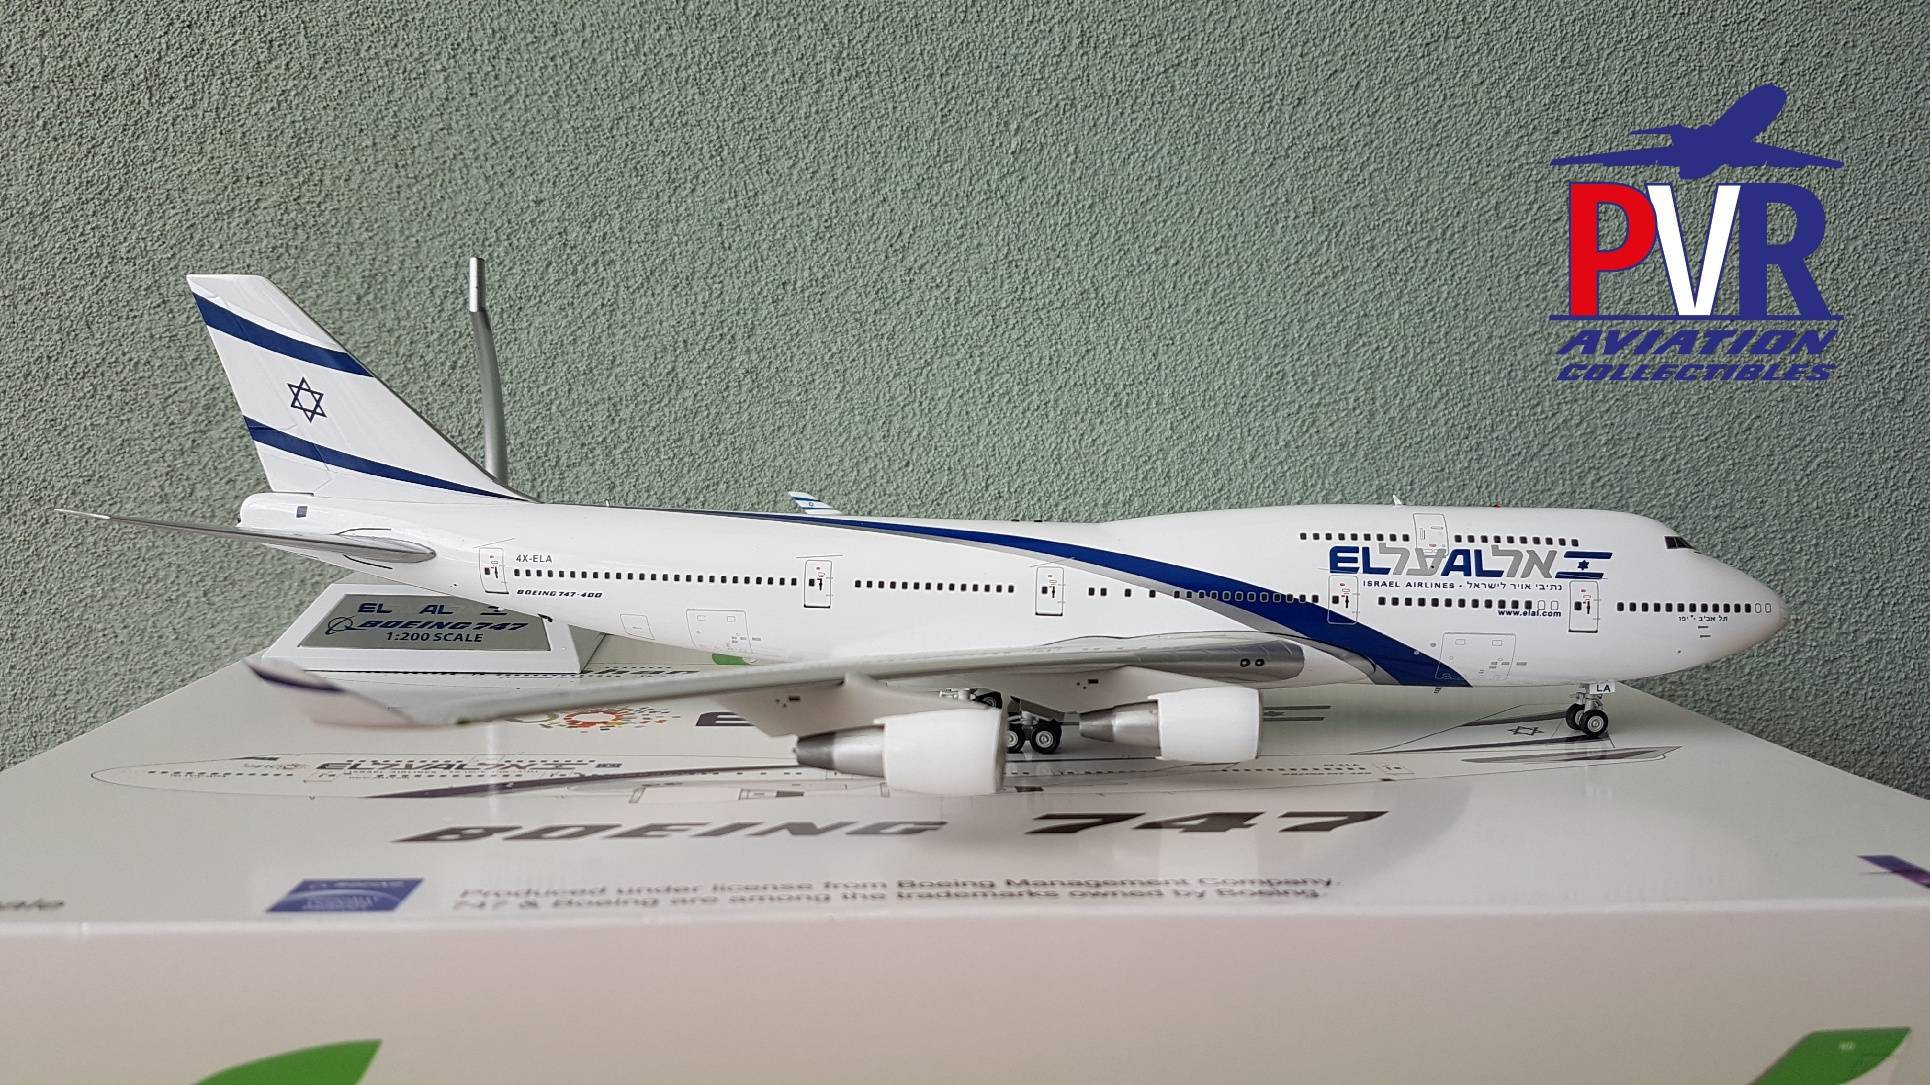 Inflight200 Boeing 747-400 EL AL '100 years' 4X-ELA from €125 now €99!